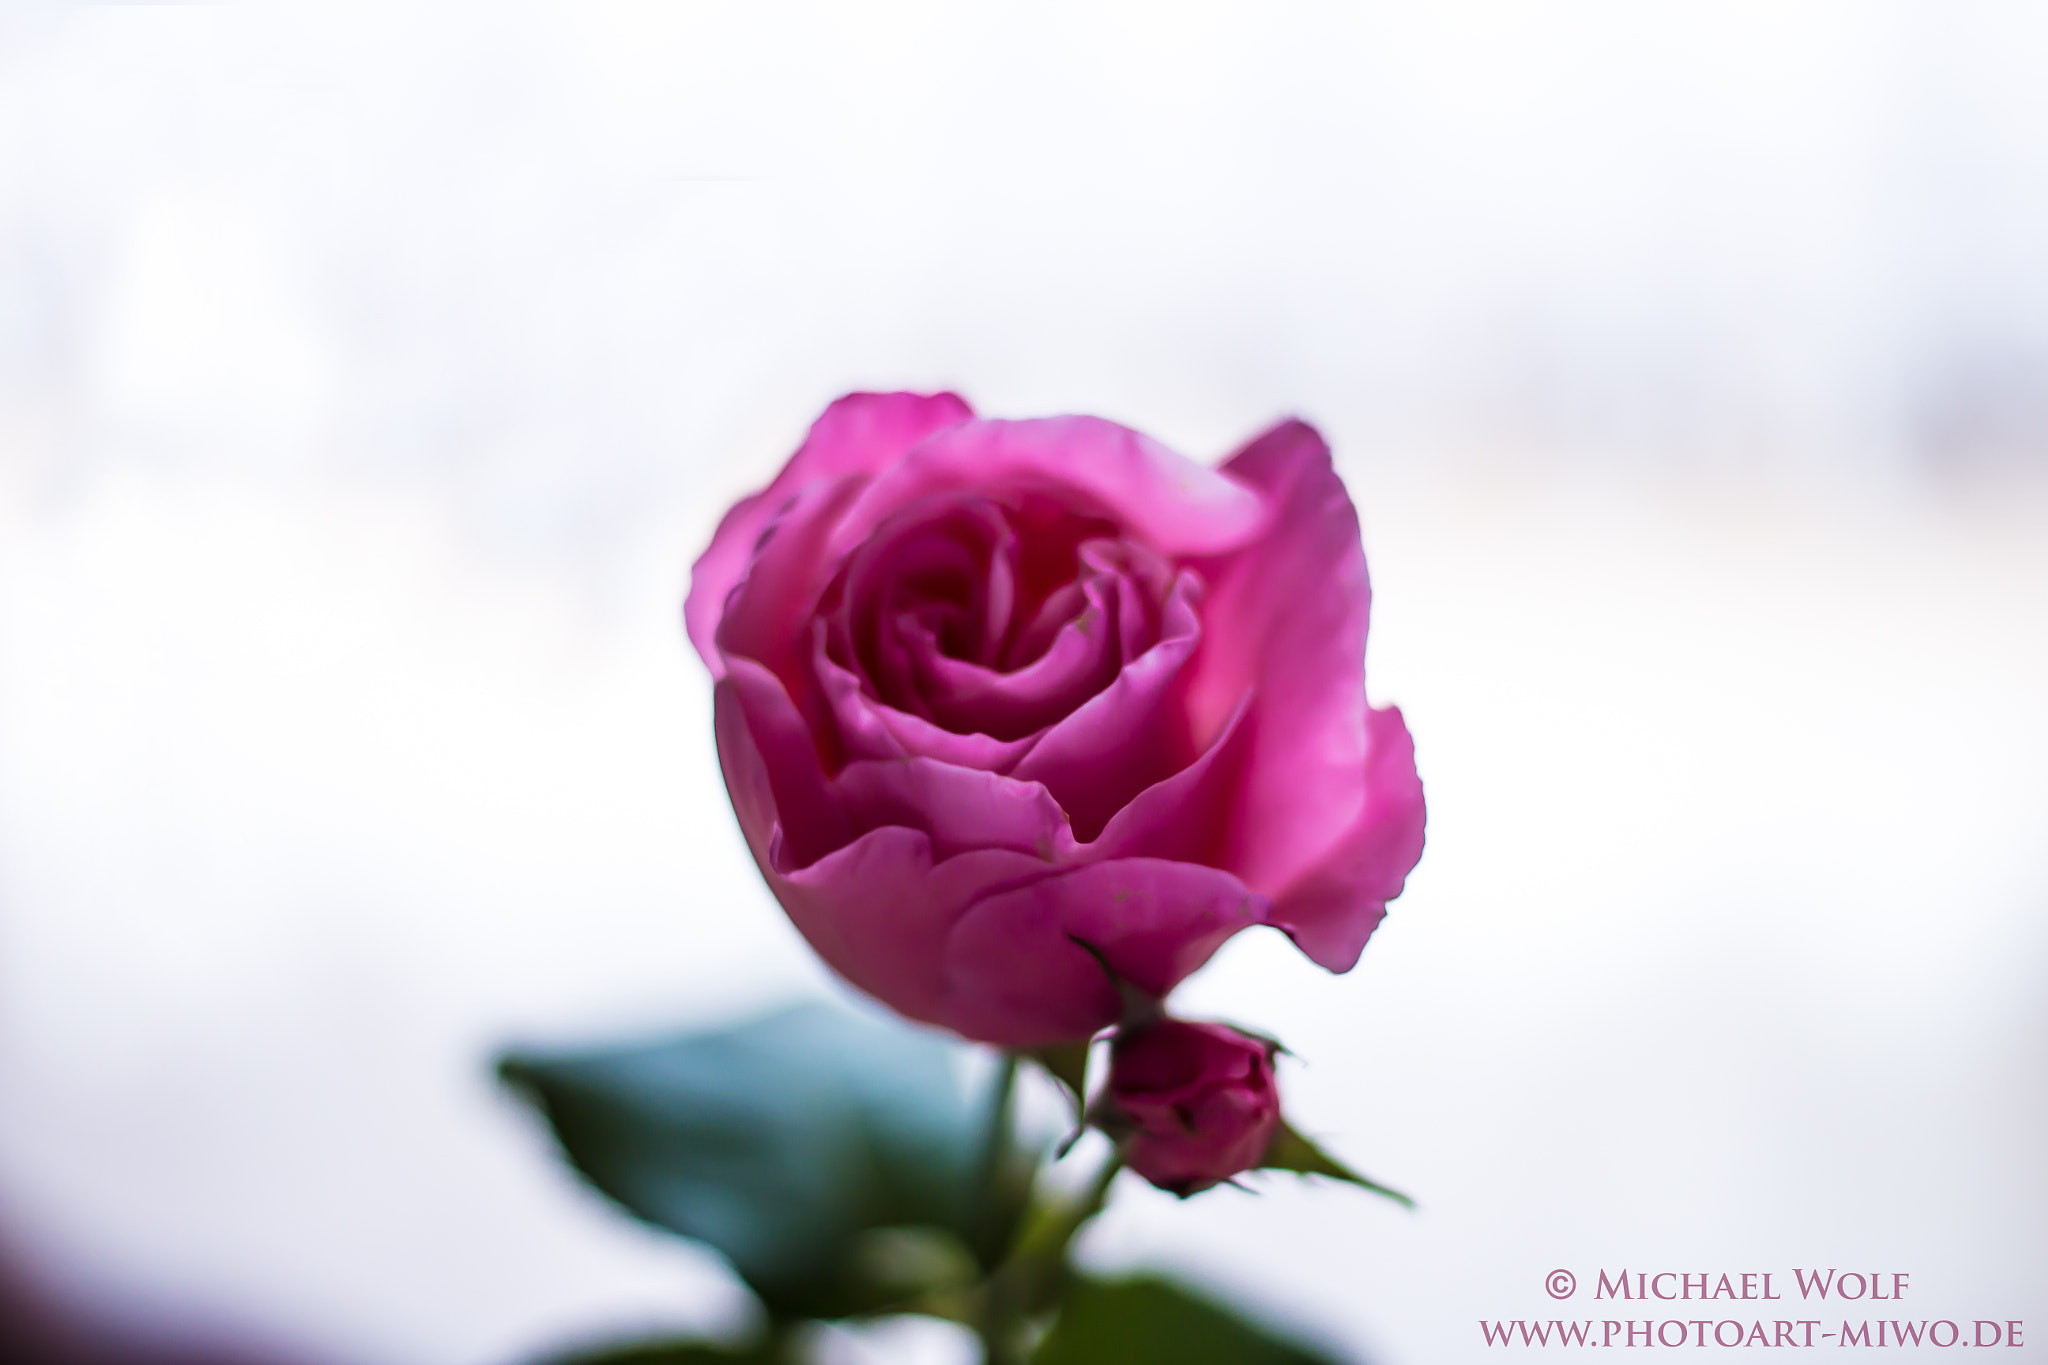 Photograph Rose by Michael Wolf on 500px